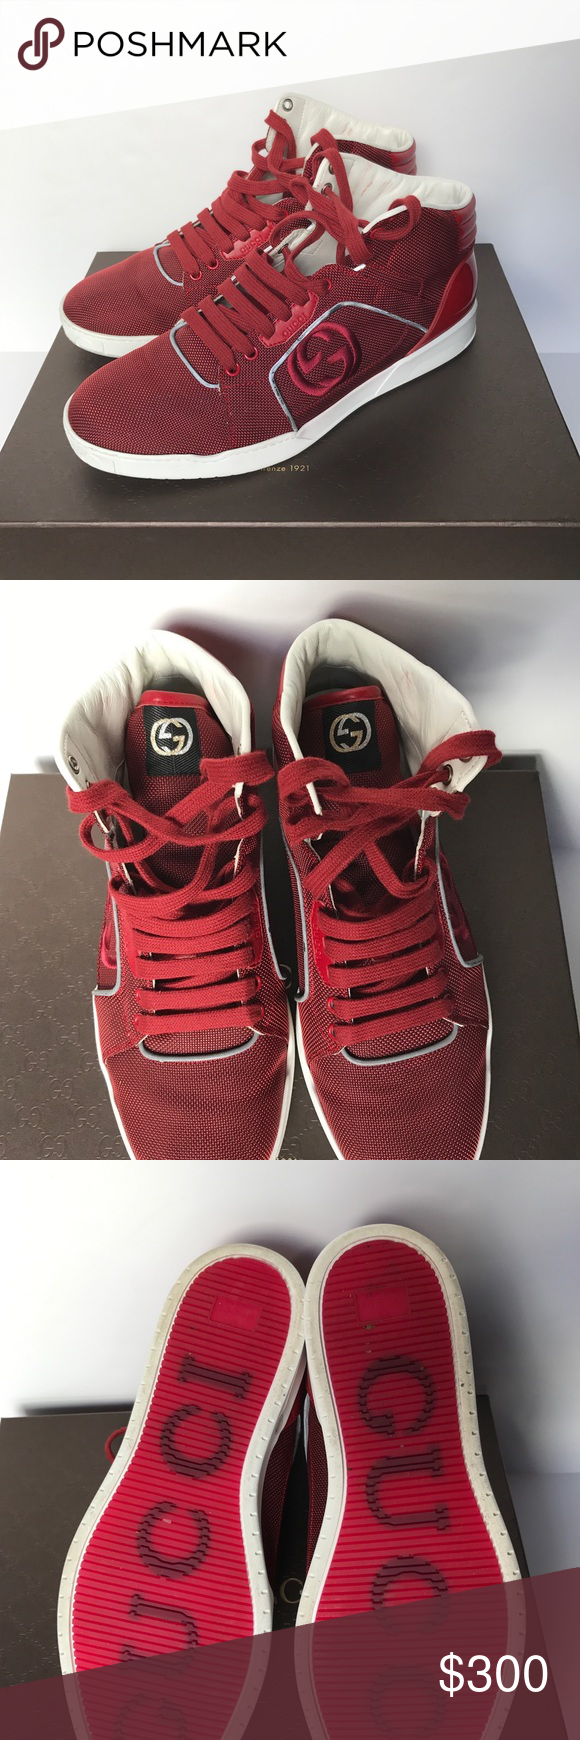 Men's Red Lace Up Gucci Sneakers Men's